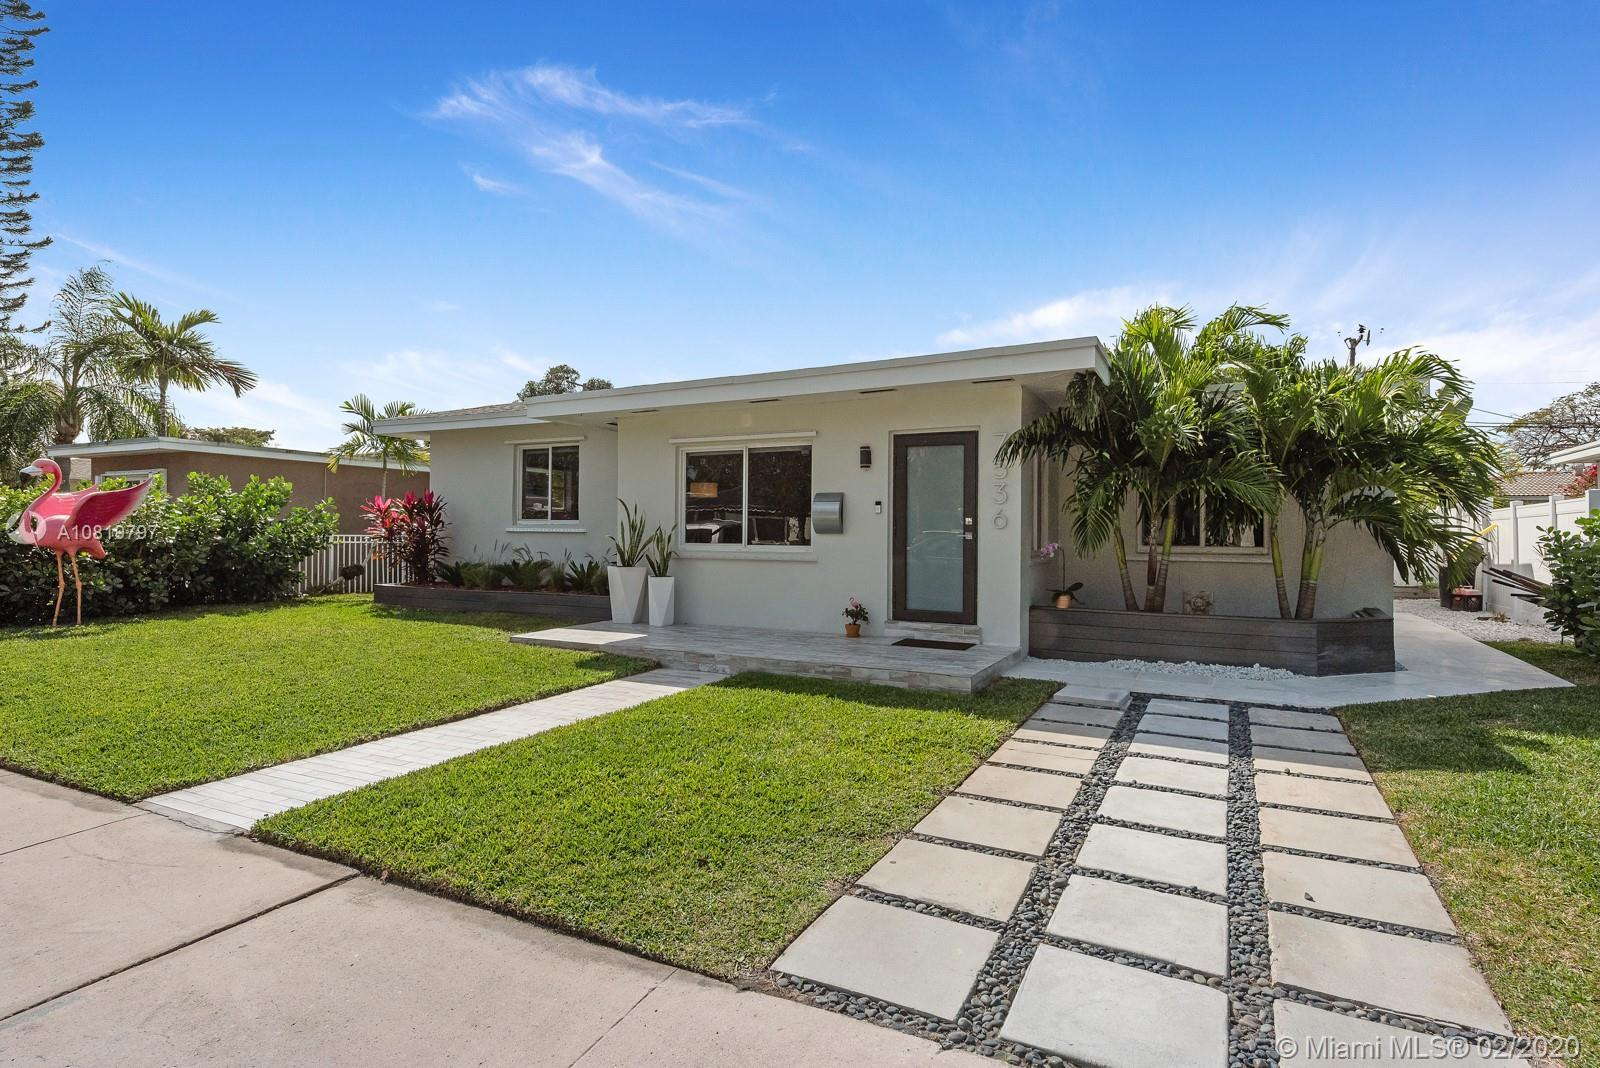 WELCOME HOME! THIS IMMACULATE, MODERN POOL HOME ON TREASURE ISLAND IN POSH NORTH BAY VILLAGE PROVIDE